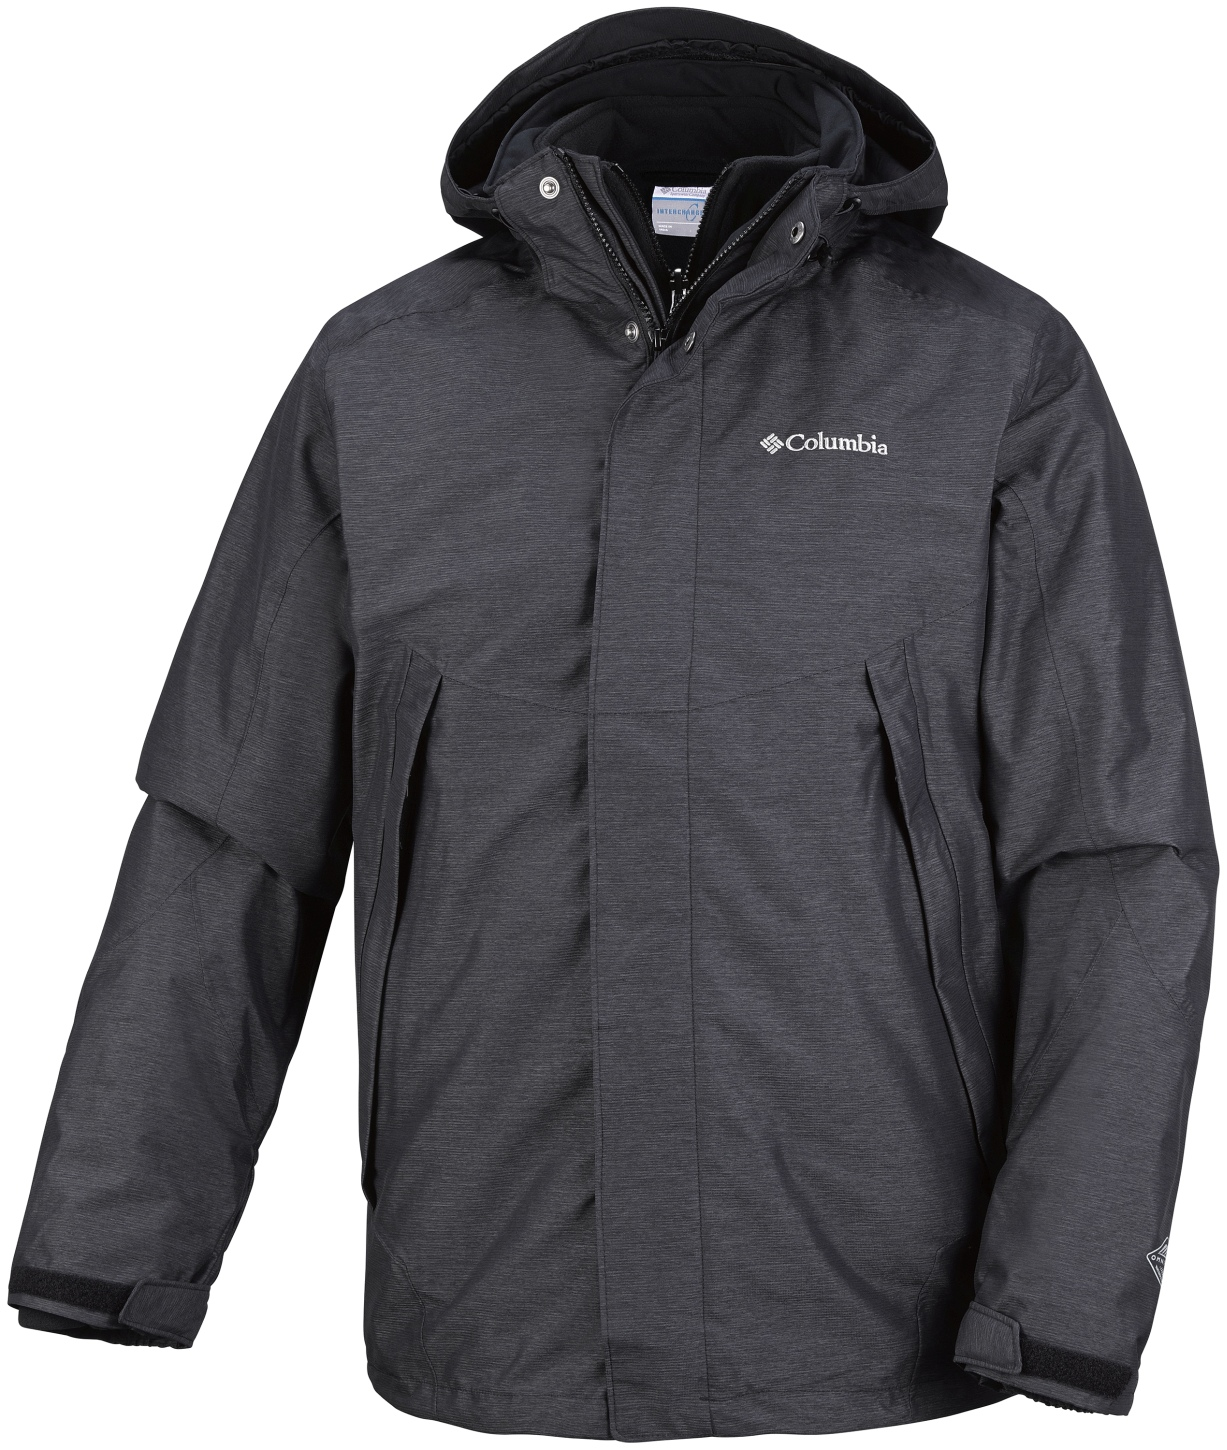 Columbia Men's Sestrieres Interchange Ski Jacket Black Crossdye, Black-30